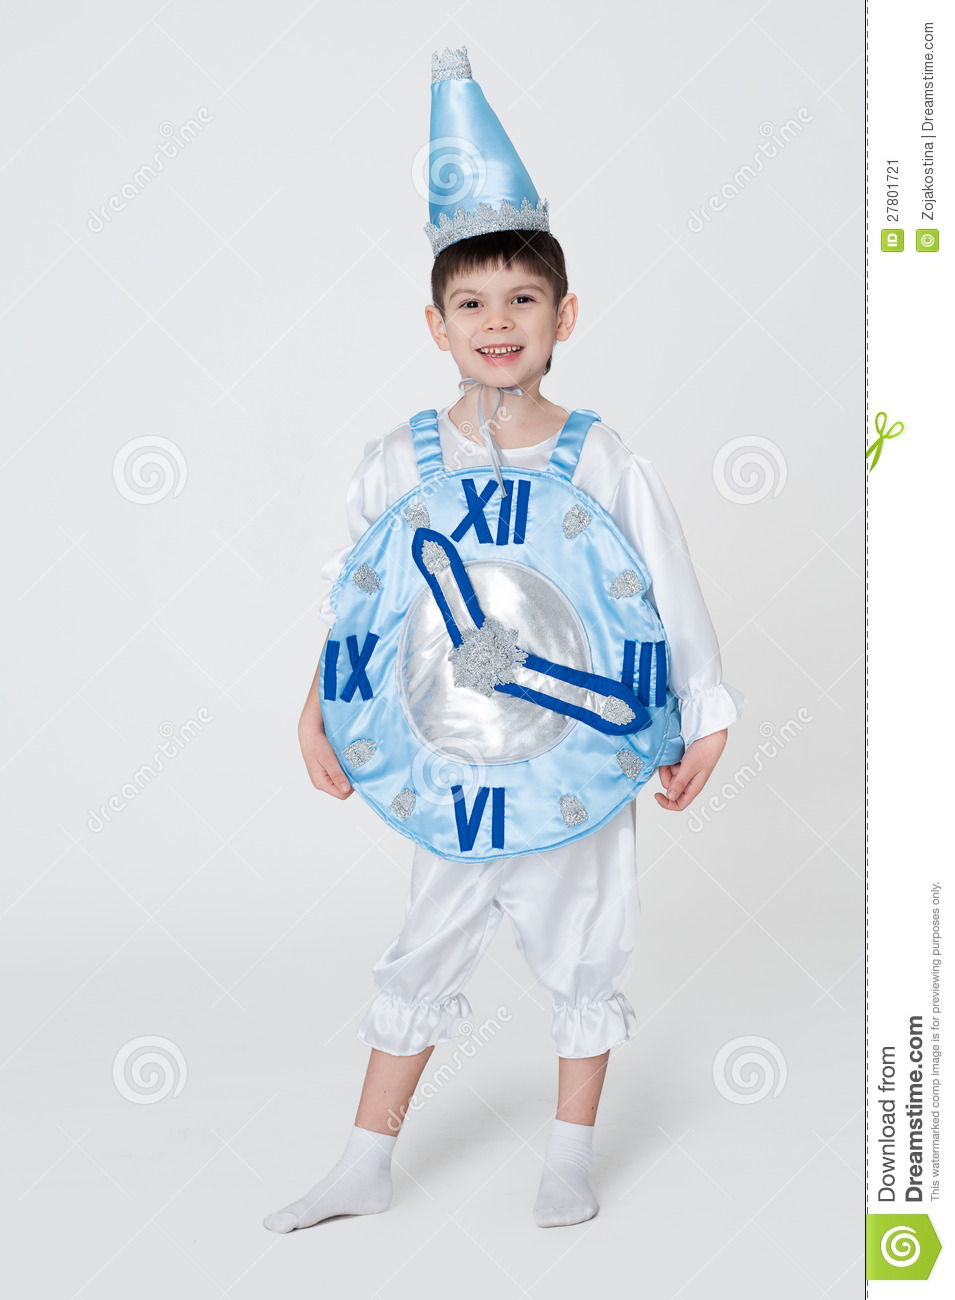 Boy wearing carnival costume of a clock for New Year party.